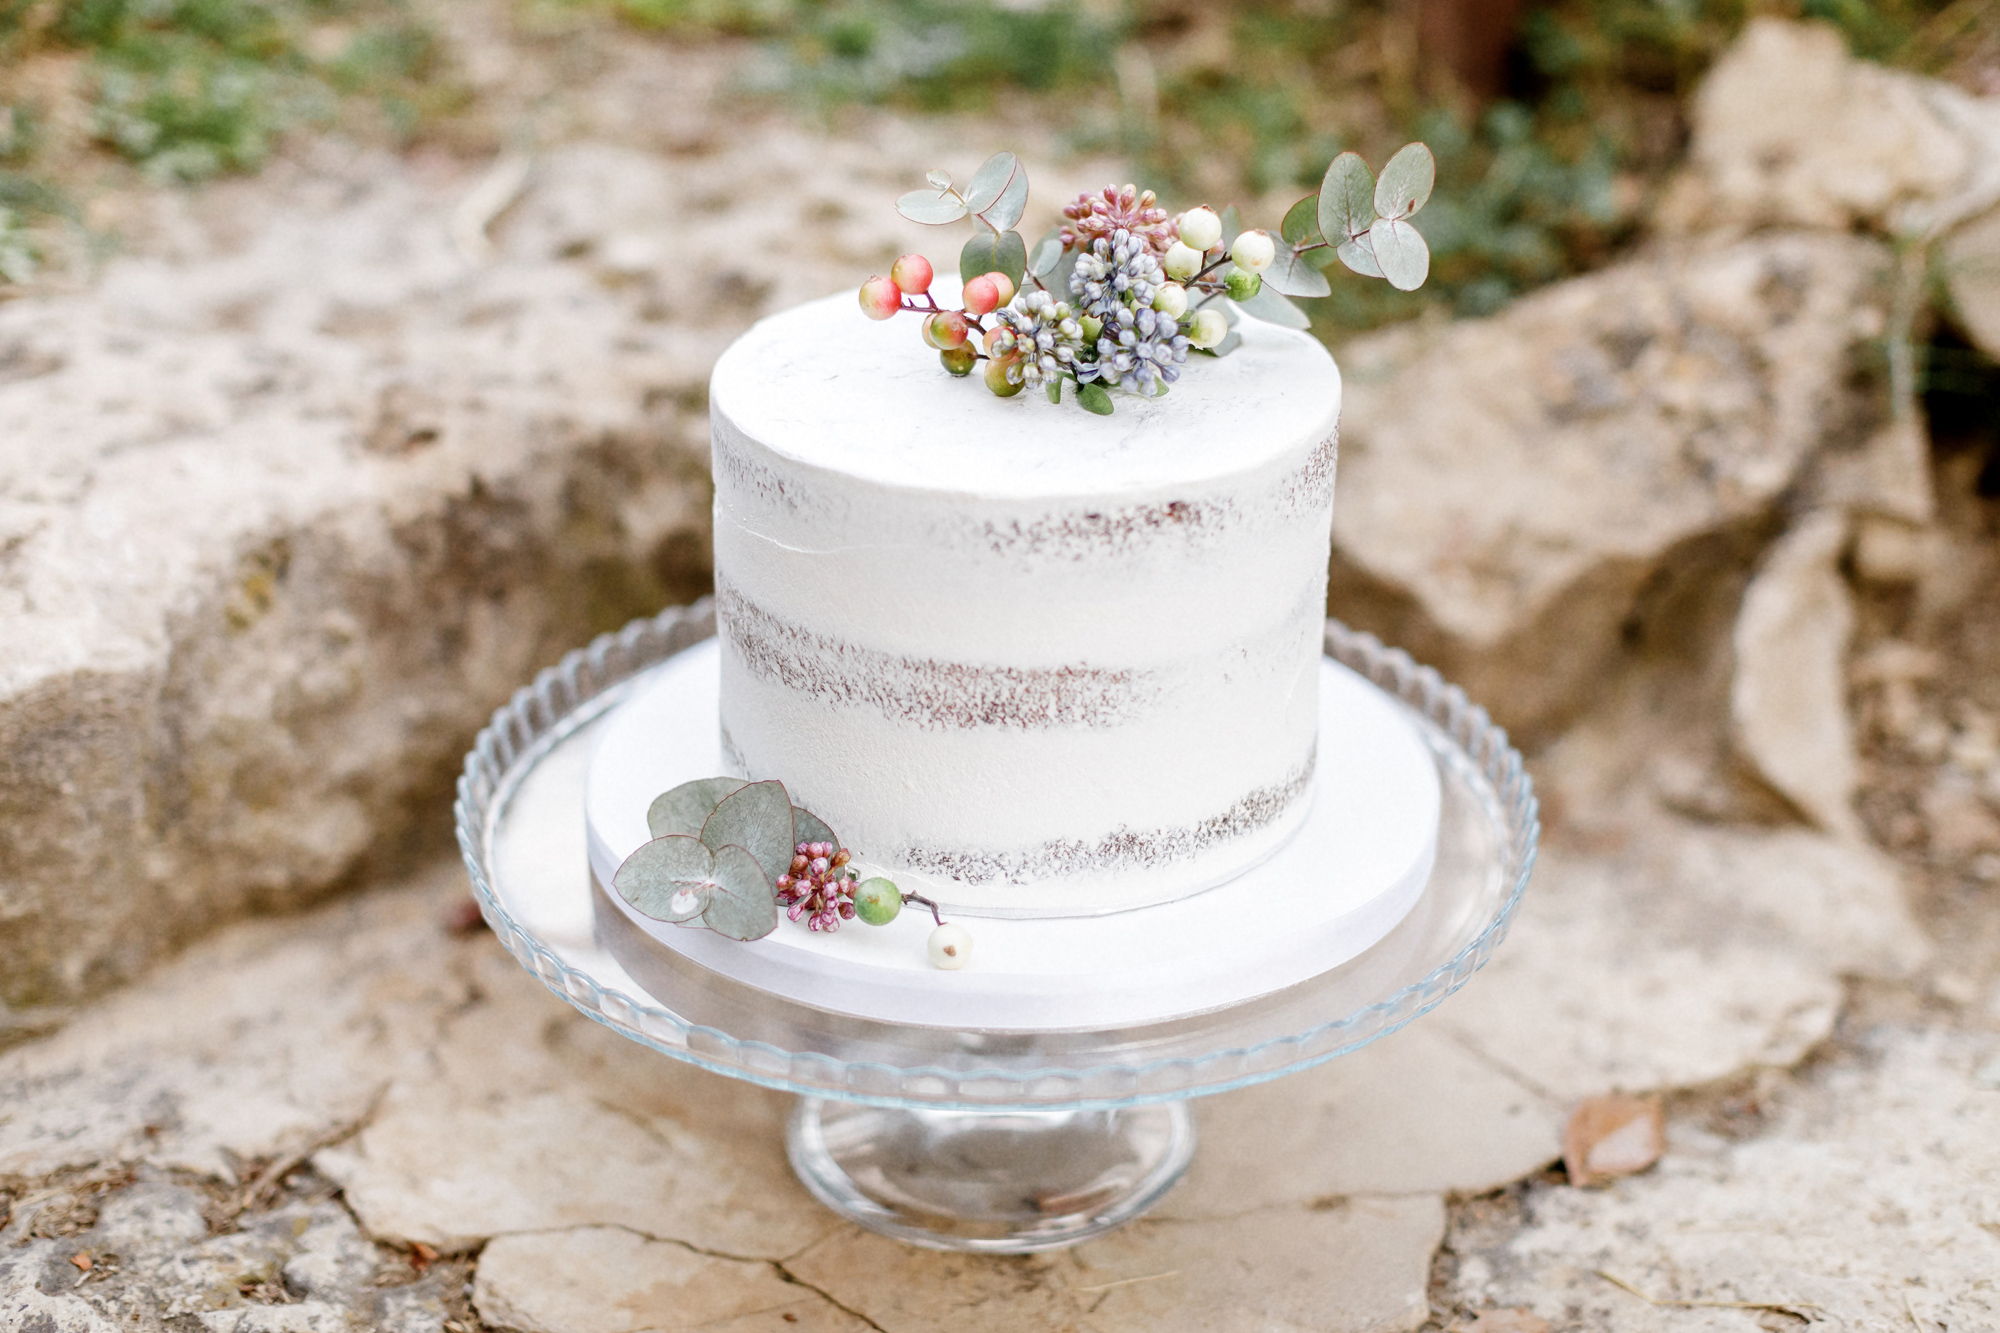 destination wedding in provence (wedding cake) by Muriel Saldalamacchia wedding planner Photo by Remi Dupac